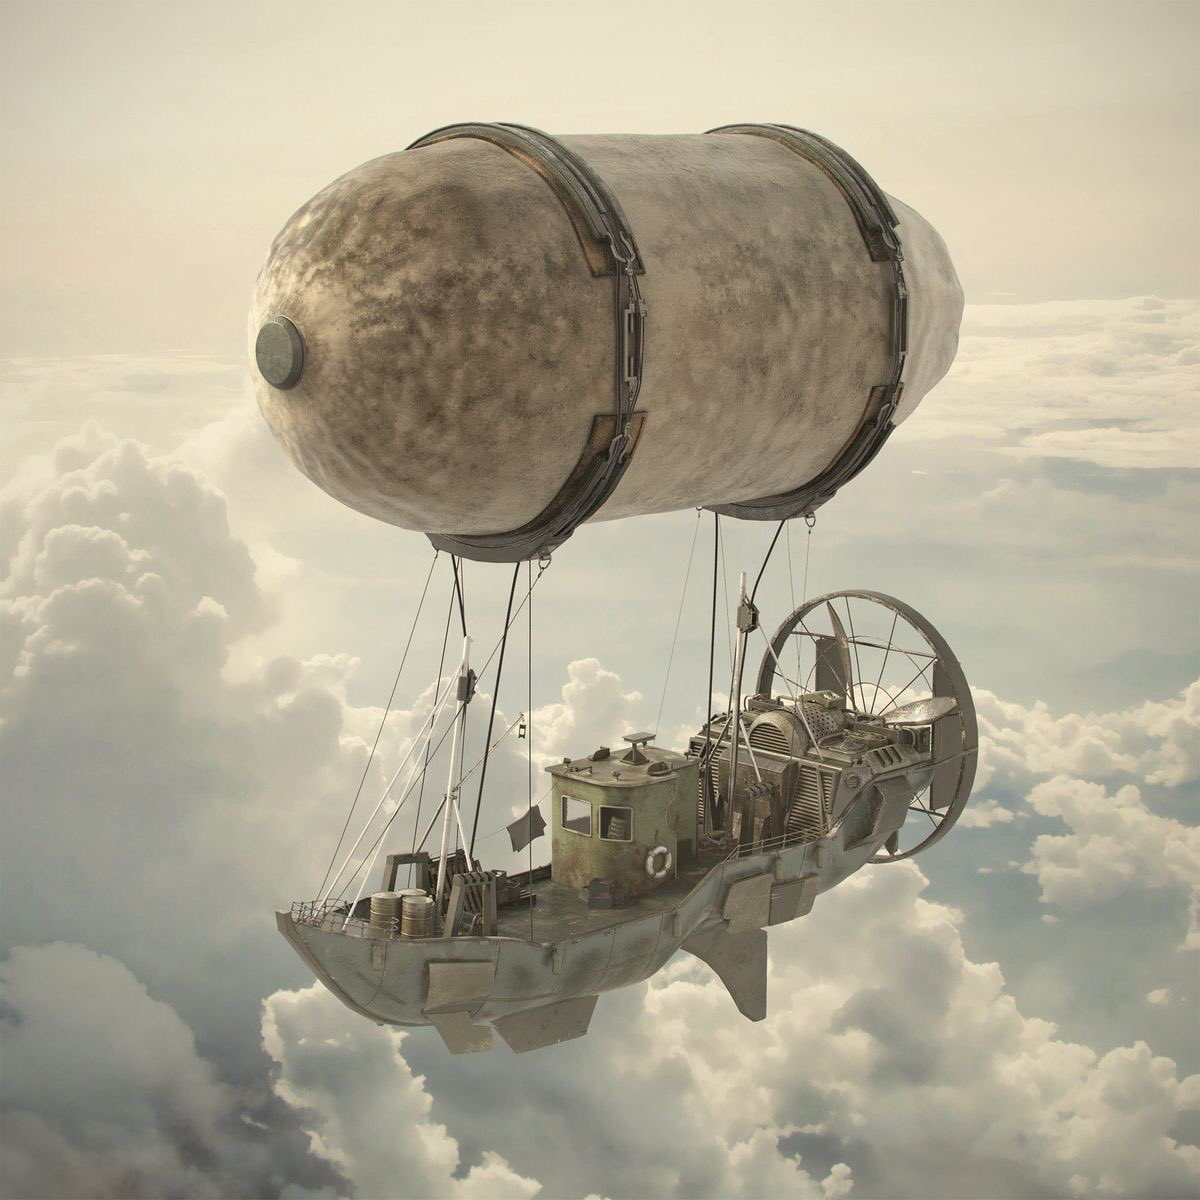 'Fly boat' by Arnaud Bellour ( I think this look like a lavatory cistern) sorry you Steam Punk purists!